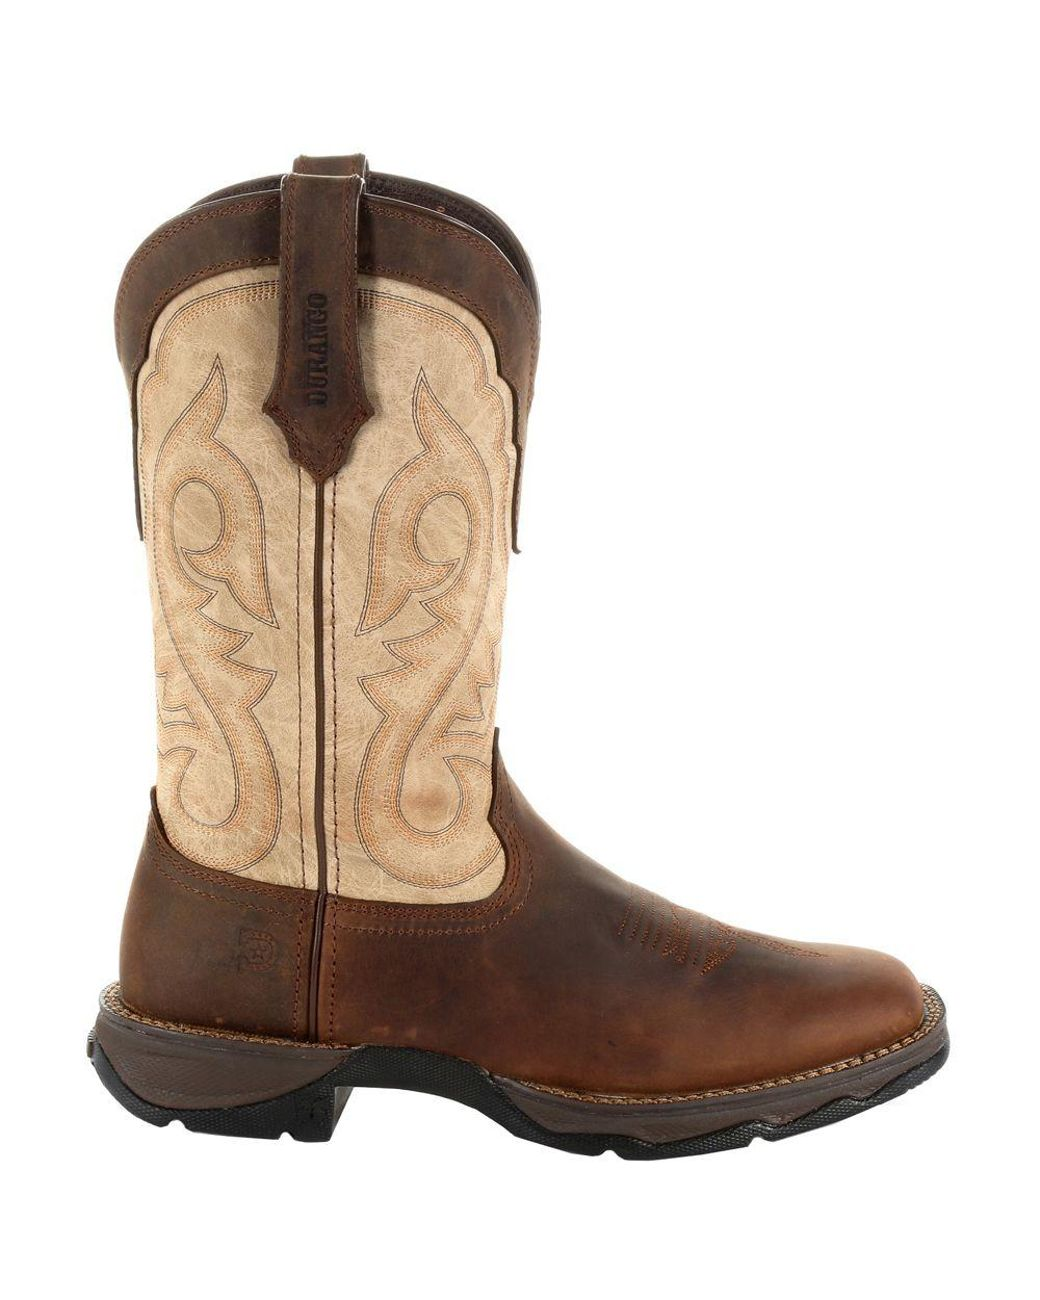 7bac1cc2cfc Lyst - Durango Lady Rebel By Women's Western Boot in Brown